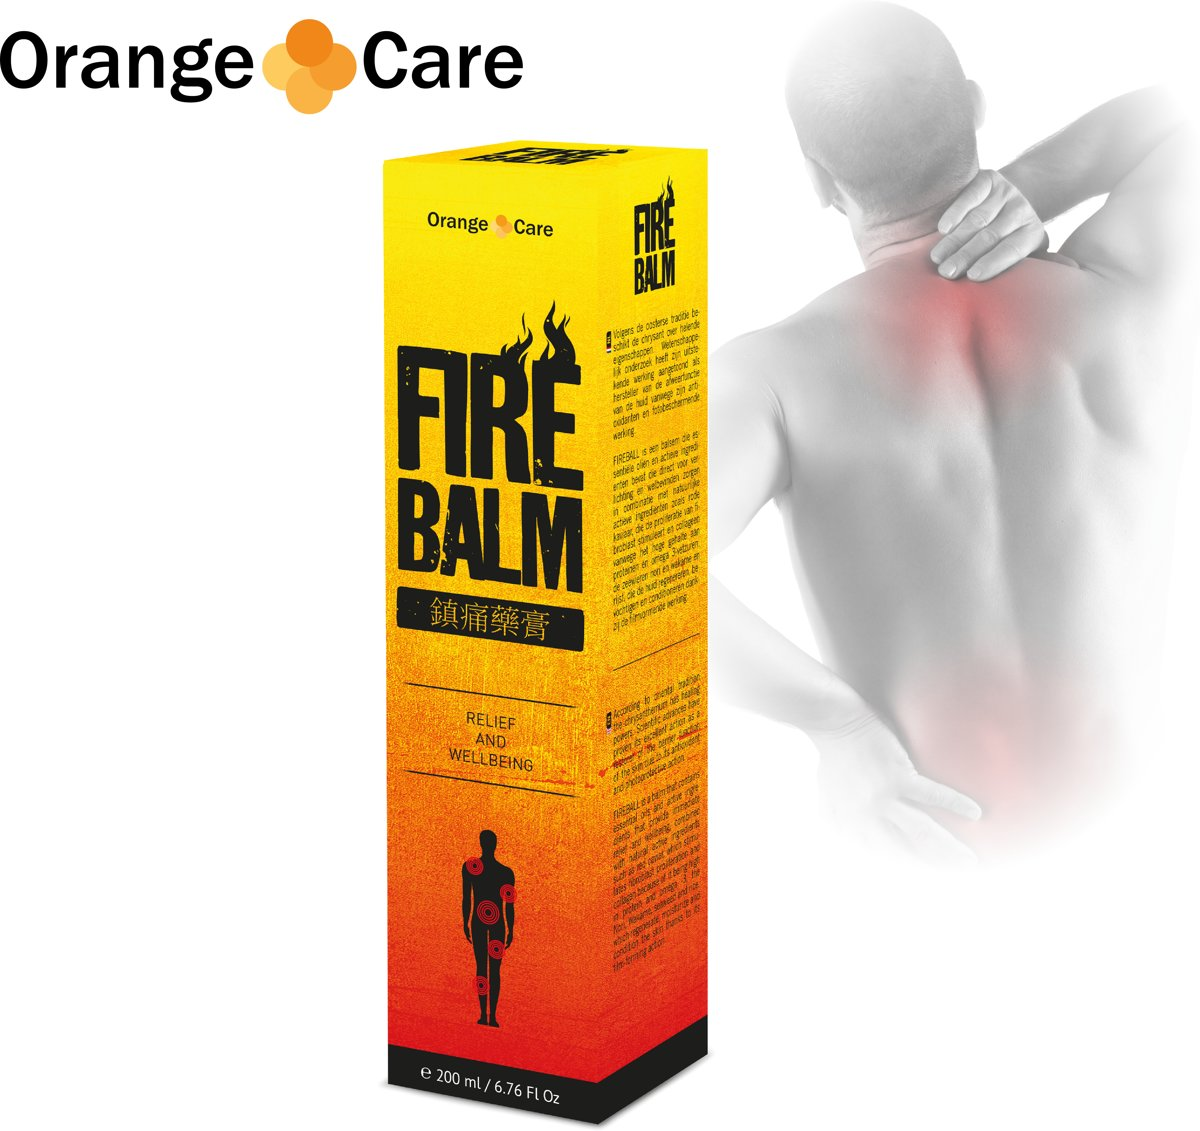 Orange care fire balm - Spierzalf - Balsem - Verwarmt kopen